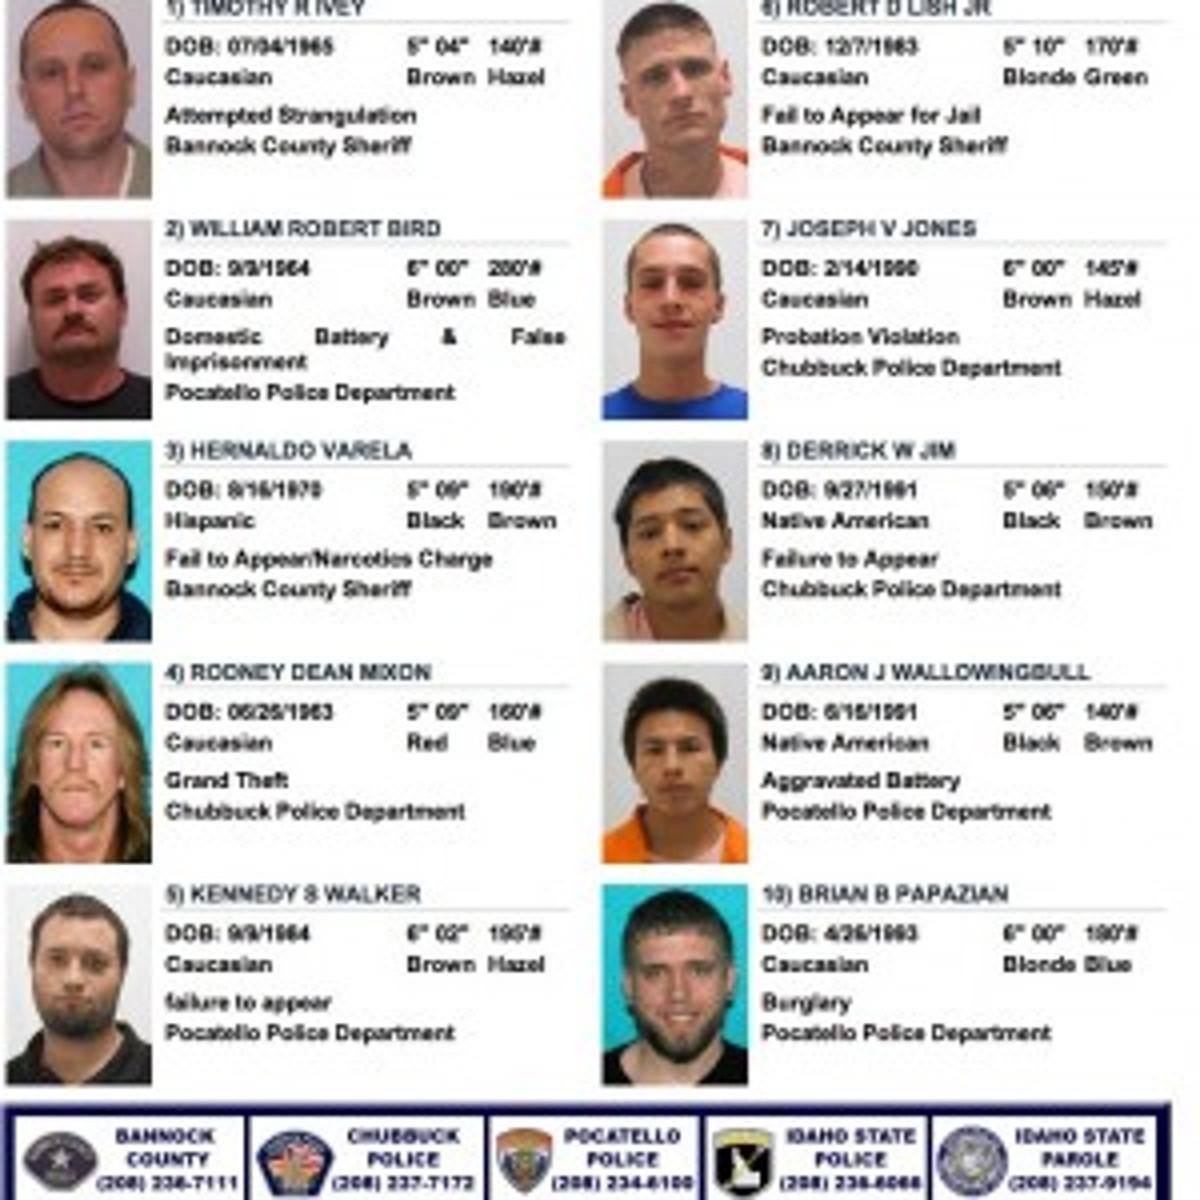 Bannock County releases Ten Most Wanted list | Local